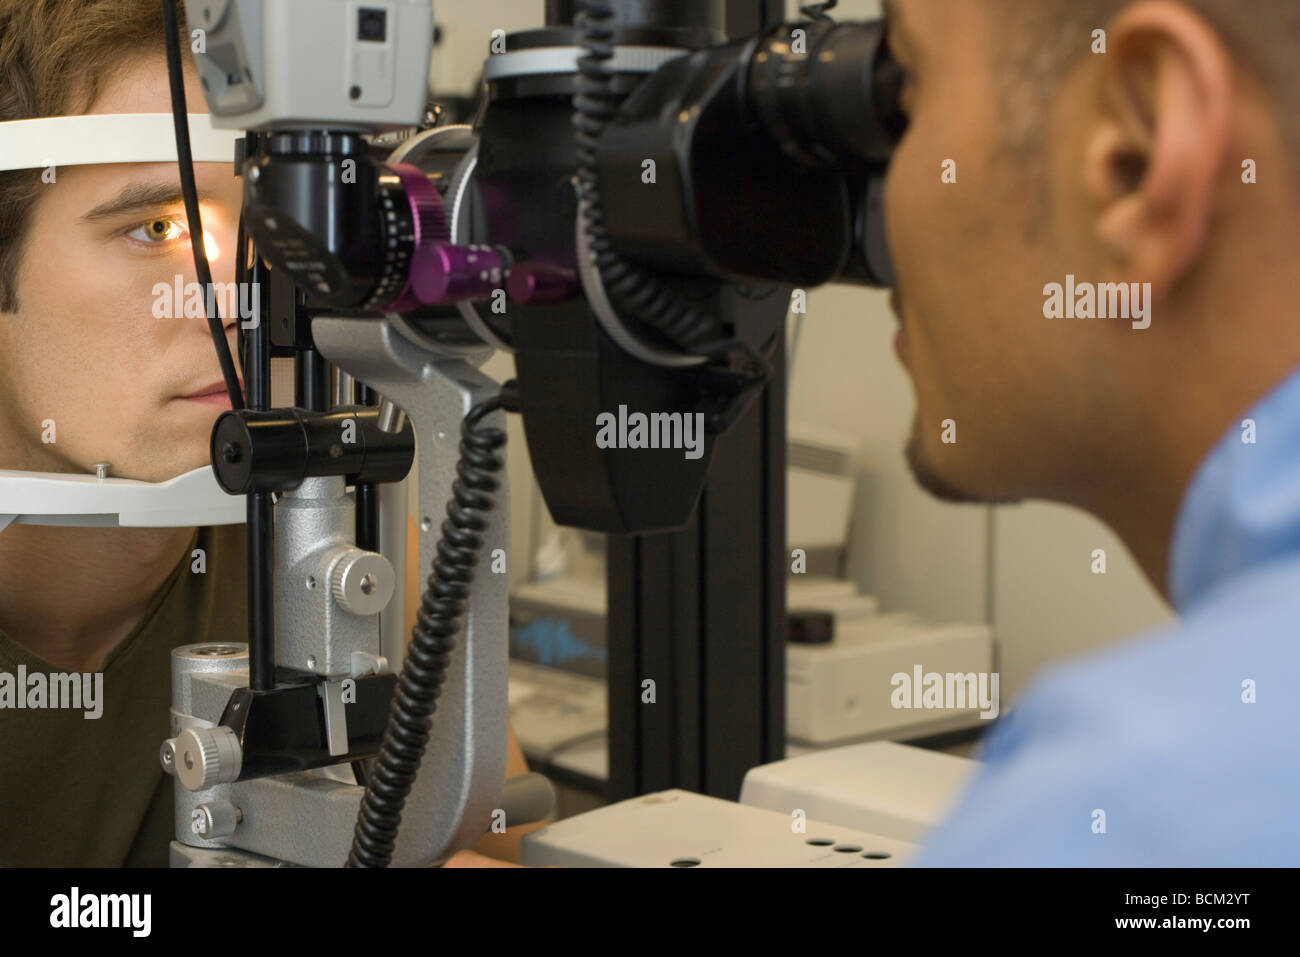 Ophthalmologist examining patient's eyes with tonometer - Stock Image